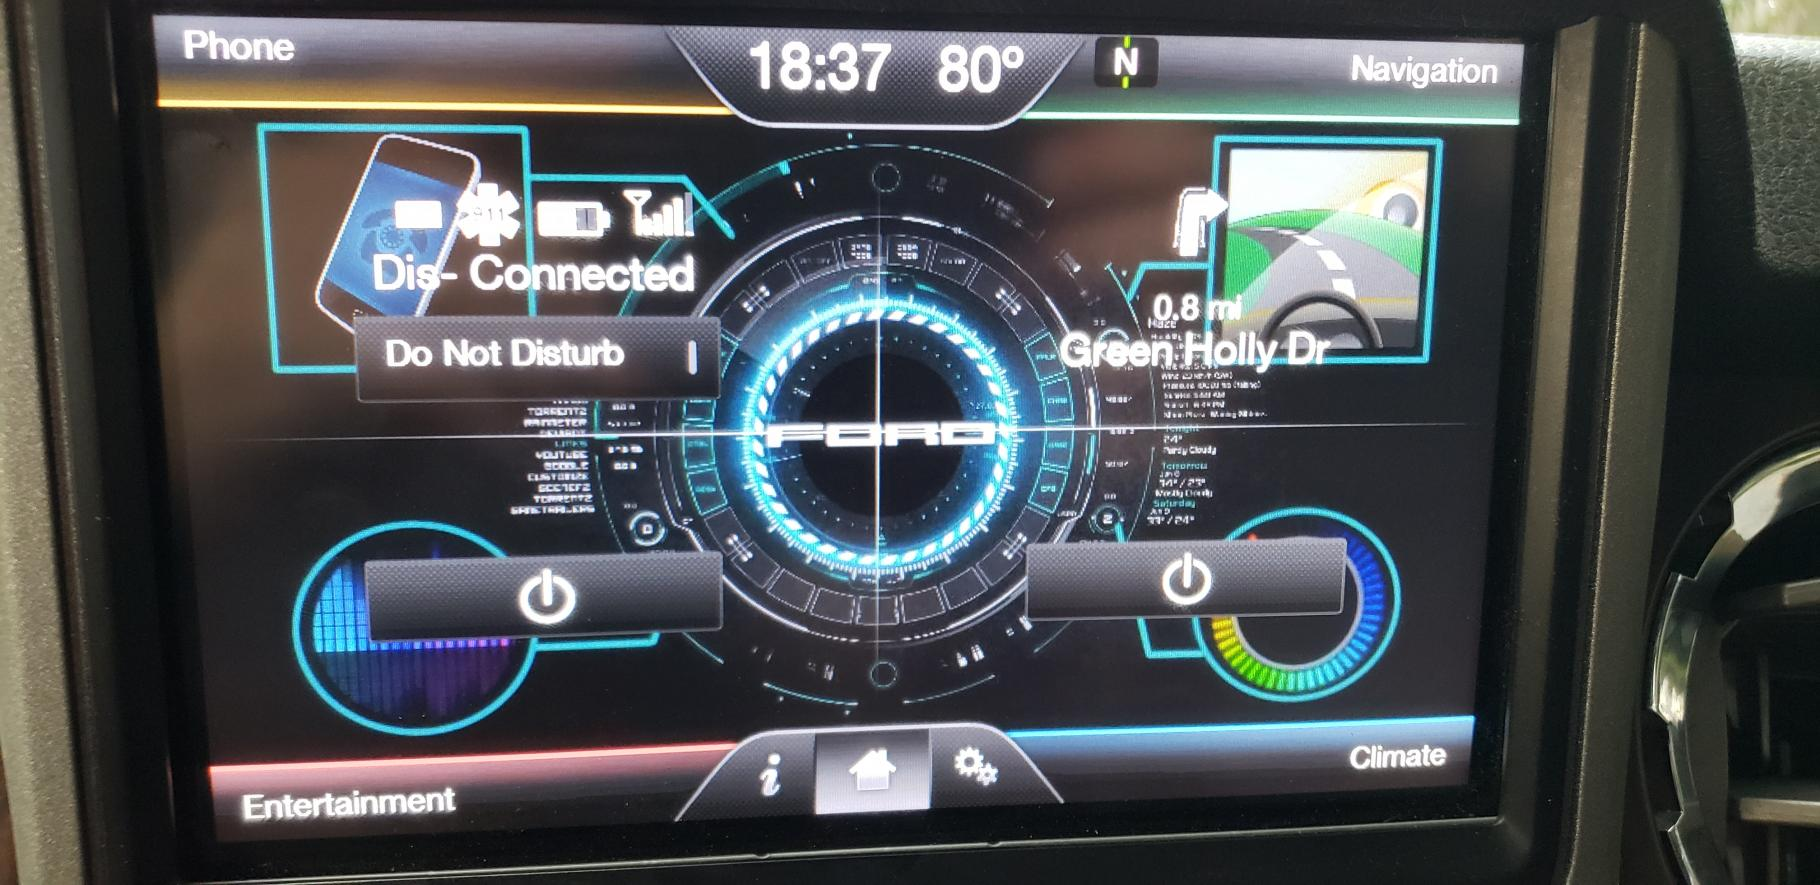 Used ForScan   added Nav to my truck   SWEET  - Ford Powerstroke